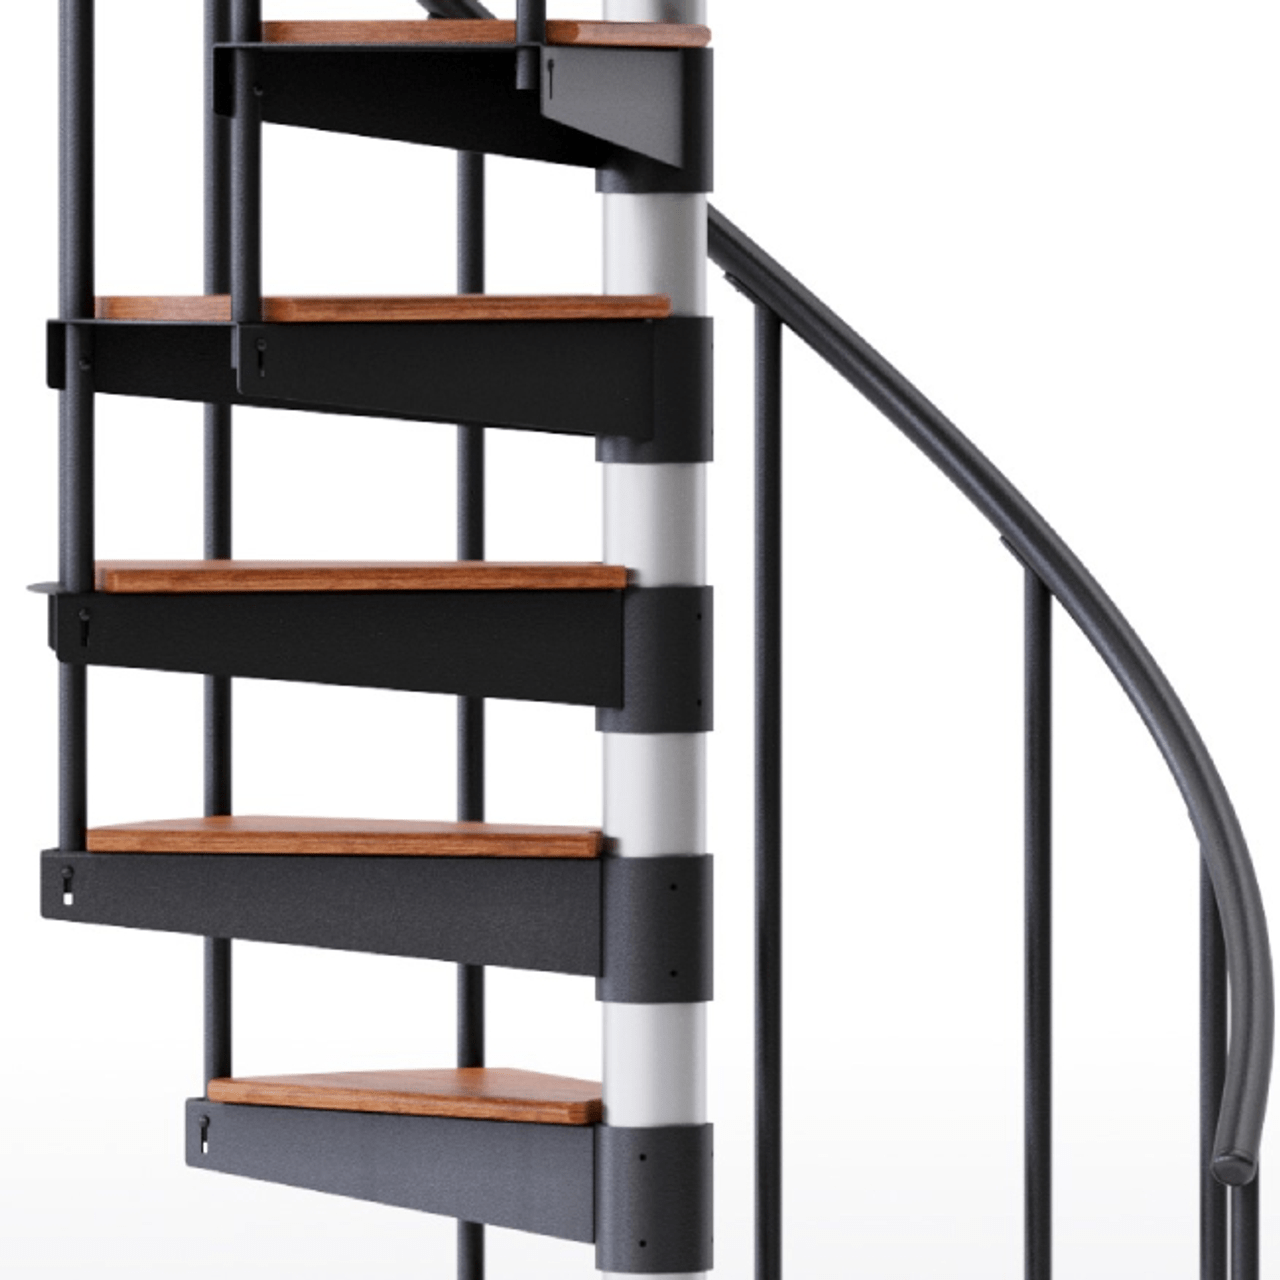 Shop The Reroute Black 3 6 Red Oak Spiral Stair Kit Mylen Stairs   Solid Wood Steps For Stairs   Staircase   Iron Rod   Oak Veneer   Rounded   Stained